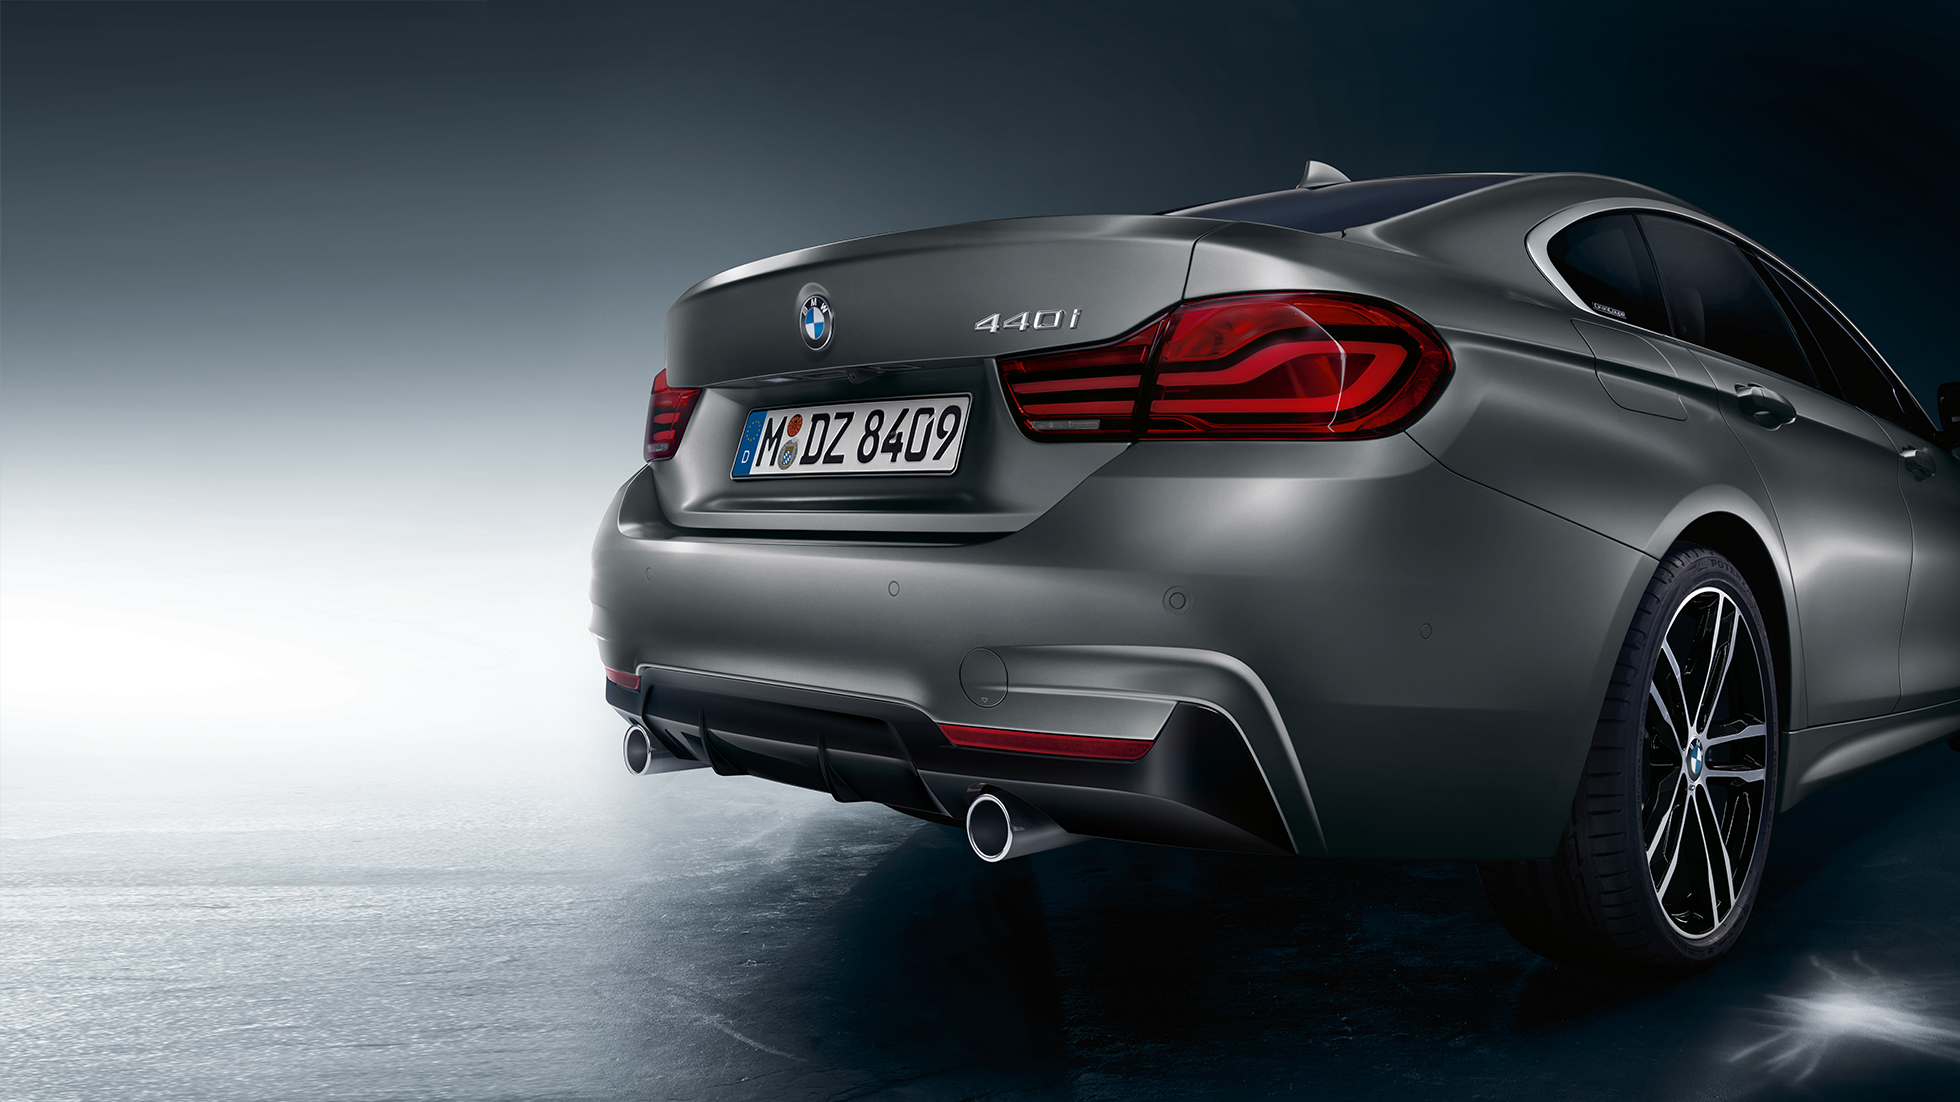 BMW 4 Series Gran Coupé, model name at the rear